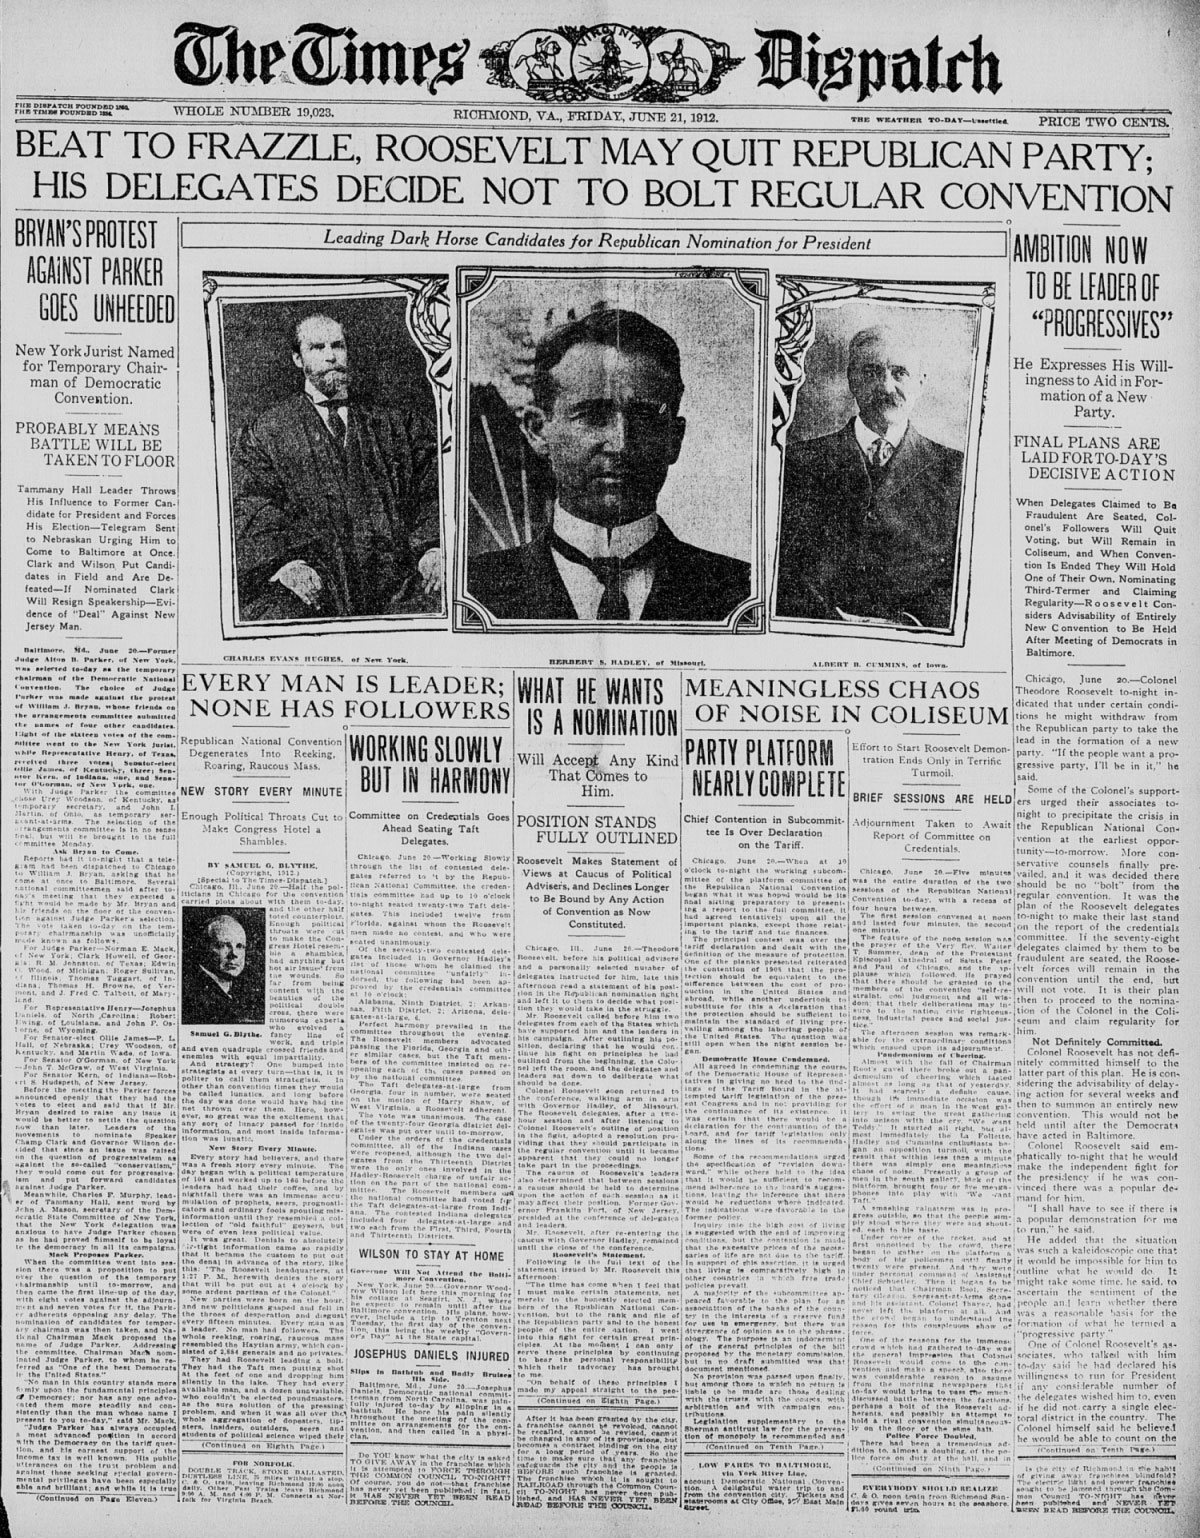 100 Years Ago Today:  Chaos at the Republican Convention